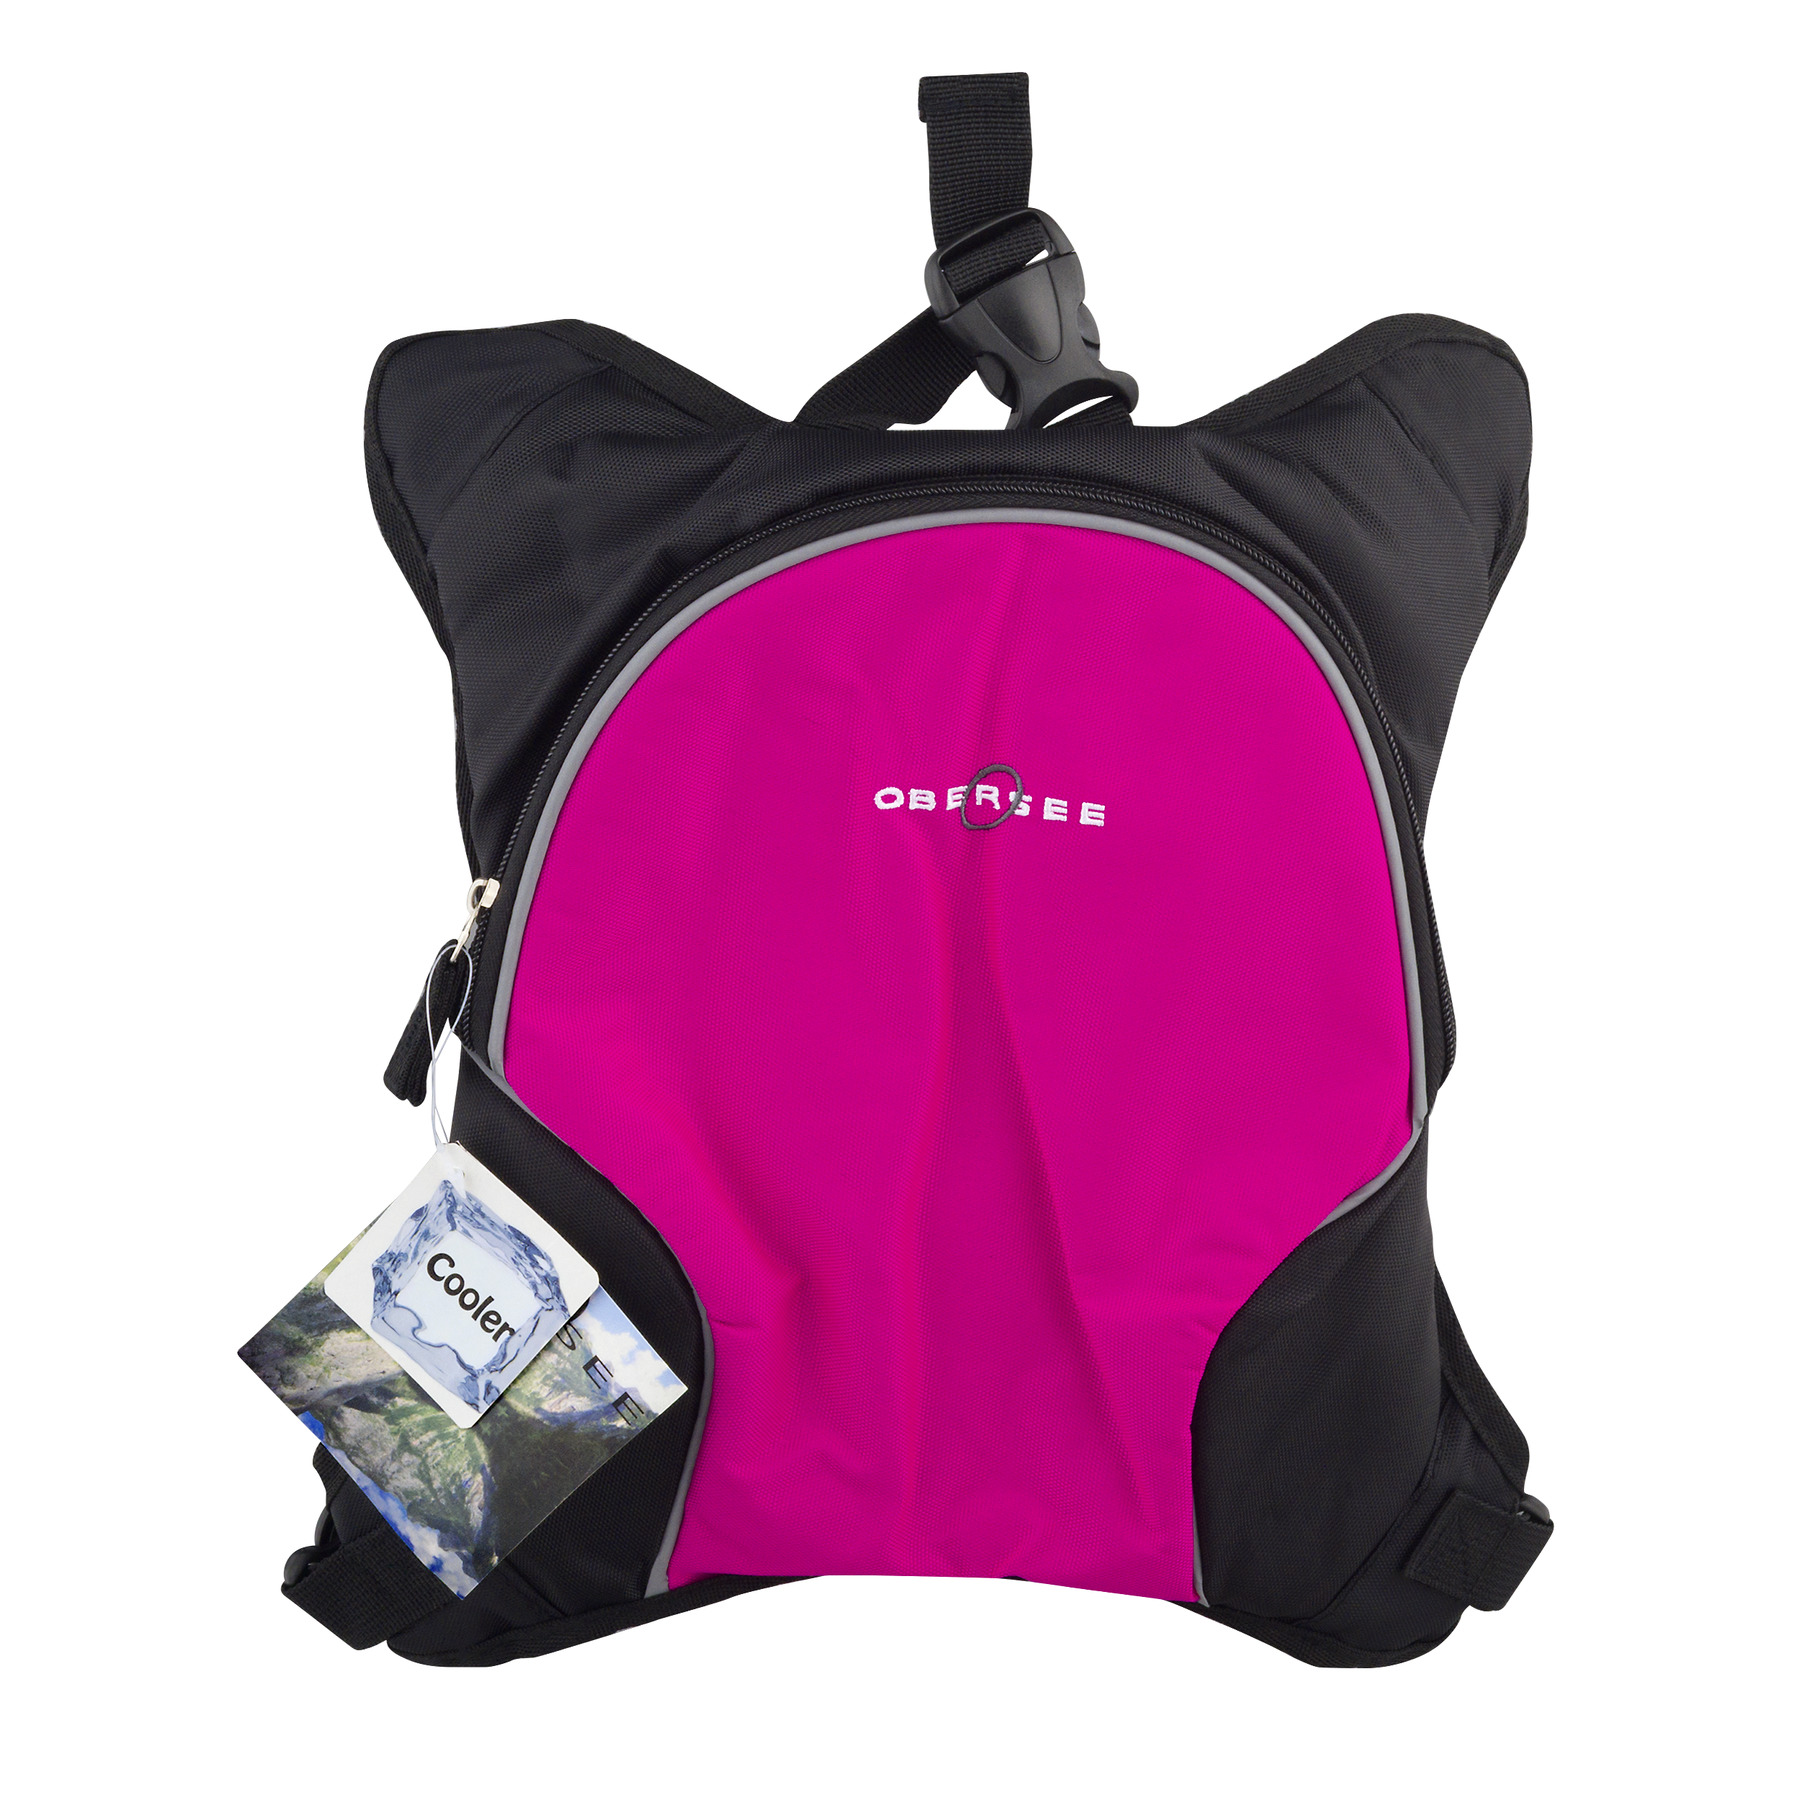 Obersee Baby Bottle Cooler Bag Stroller Attachment, Black